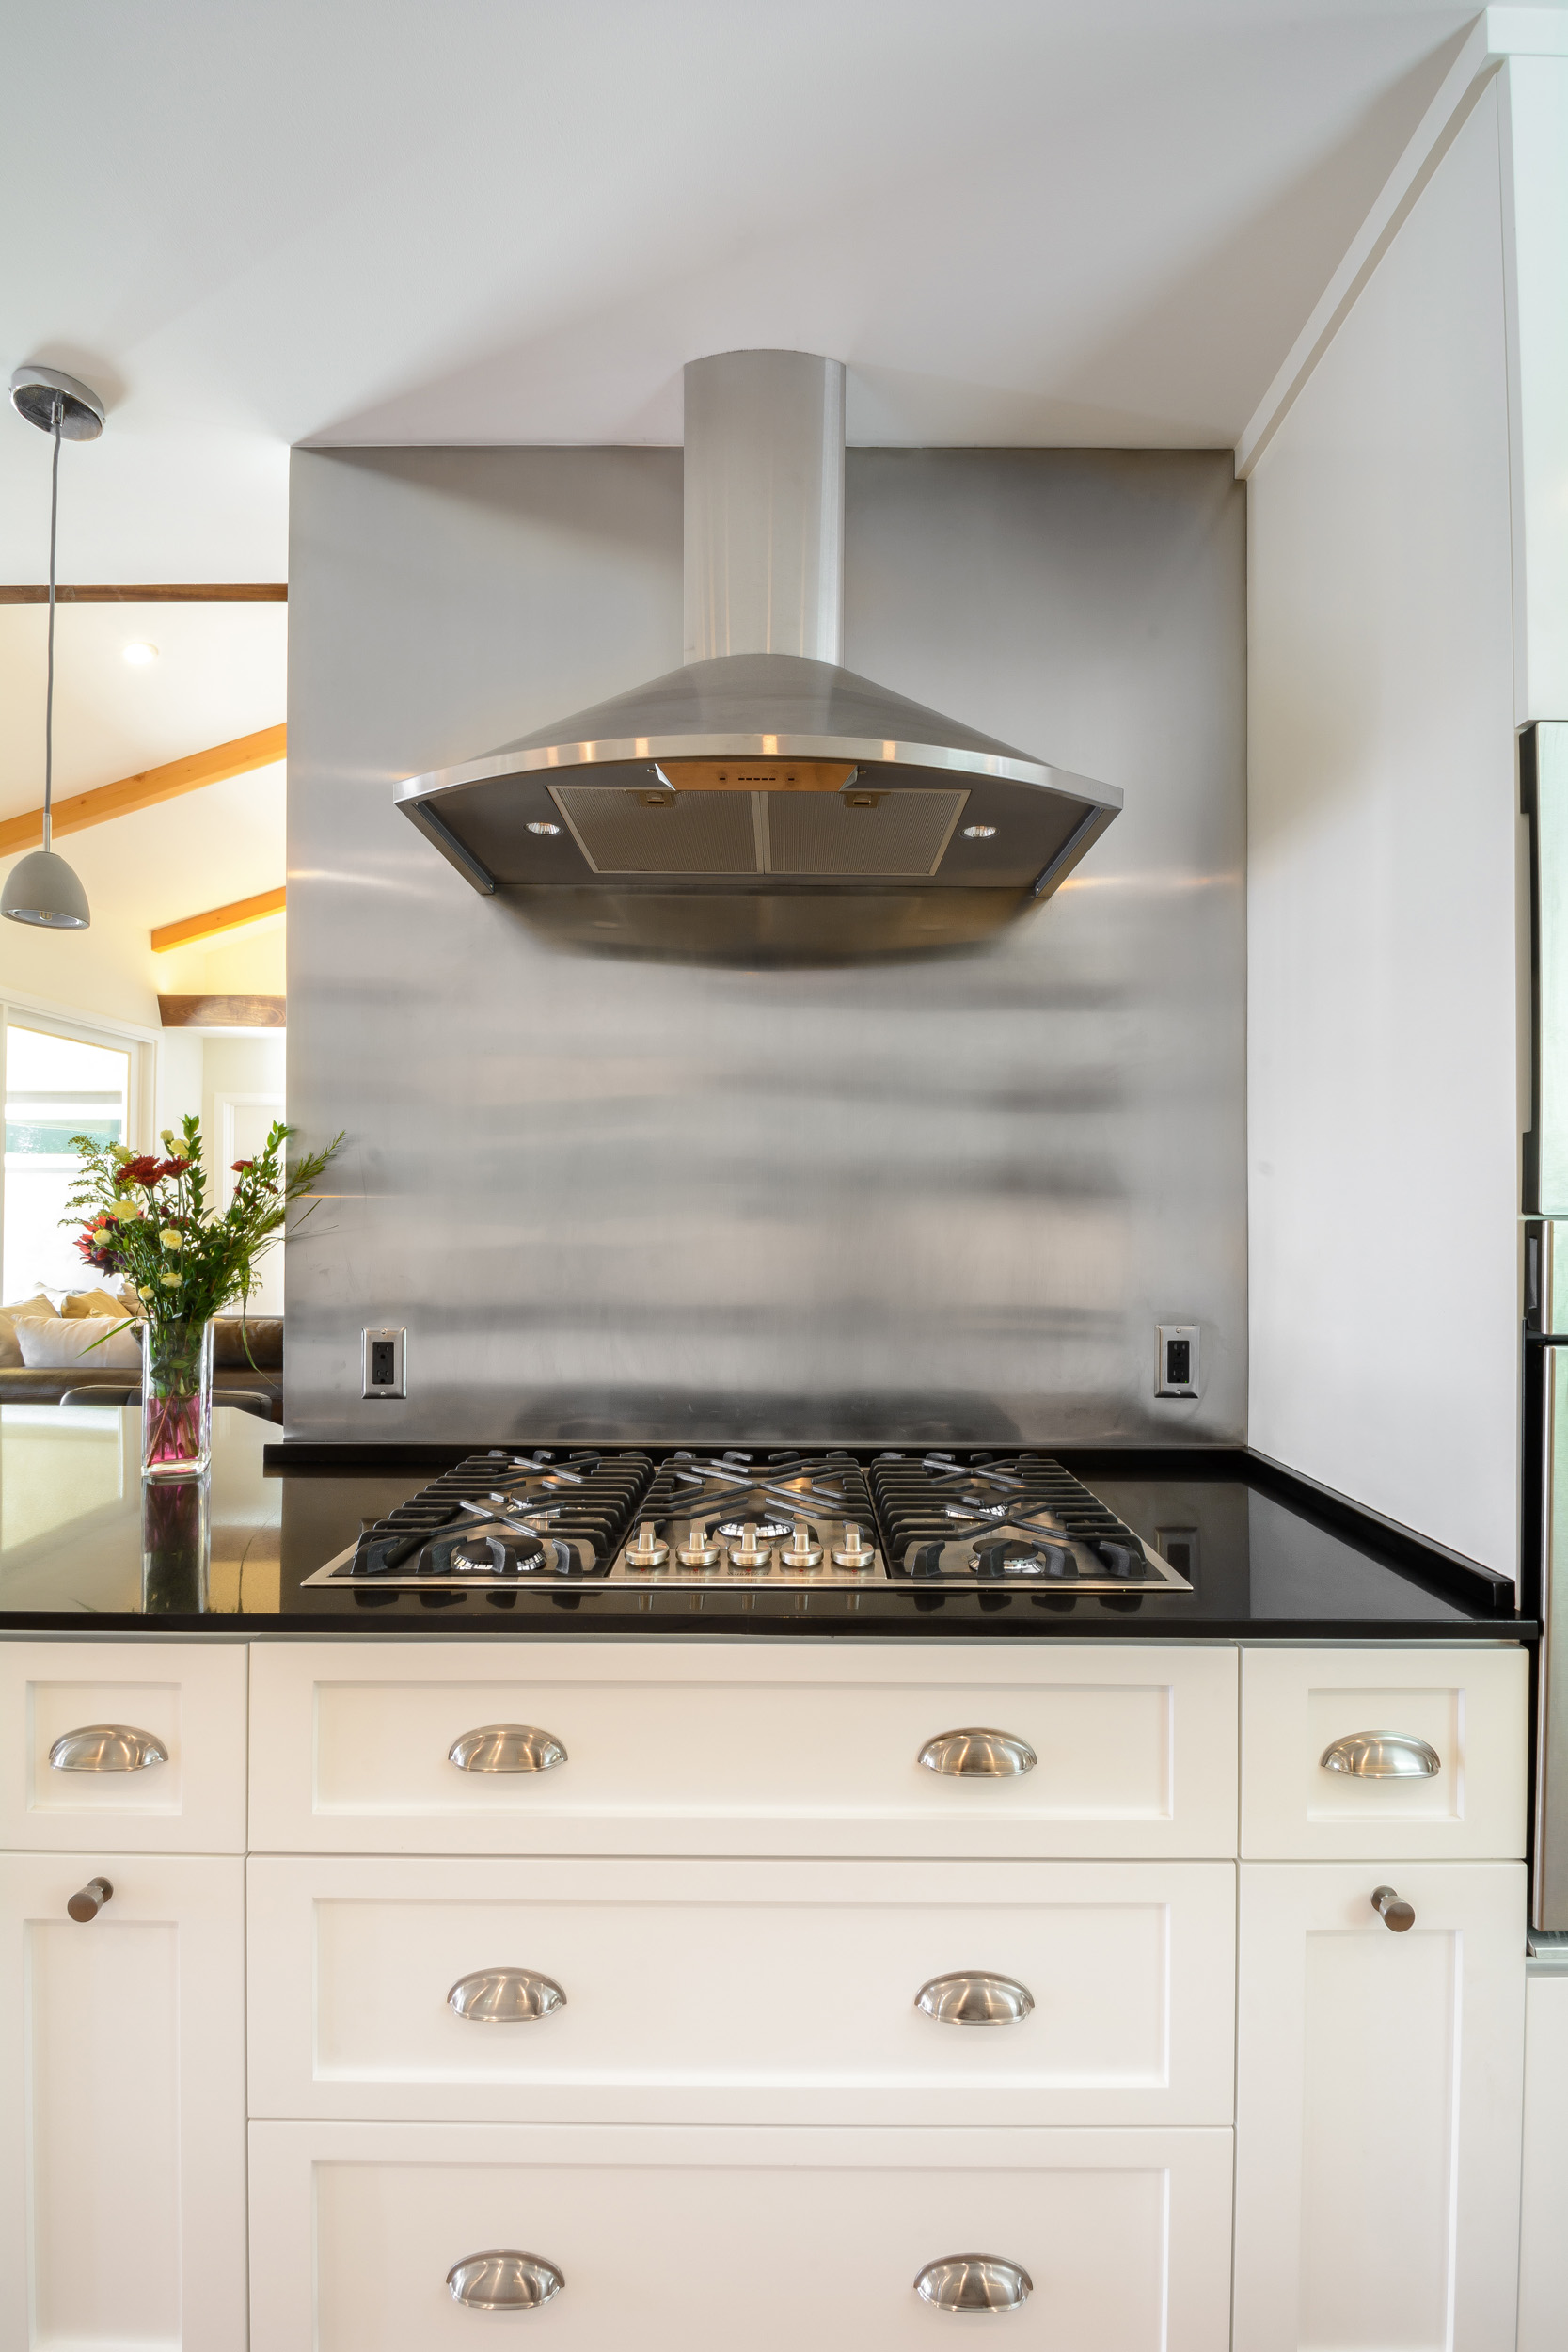 Stainless steel 5-burner cooktop and wall-mounted hood over white shaker cabinets with black quartz countertop and stainless steel backsplash